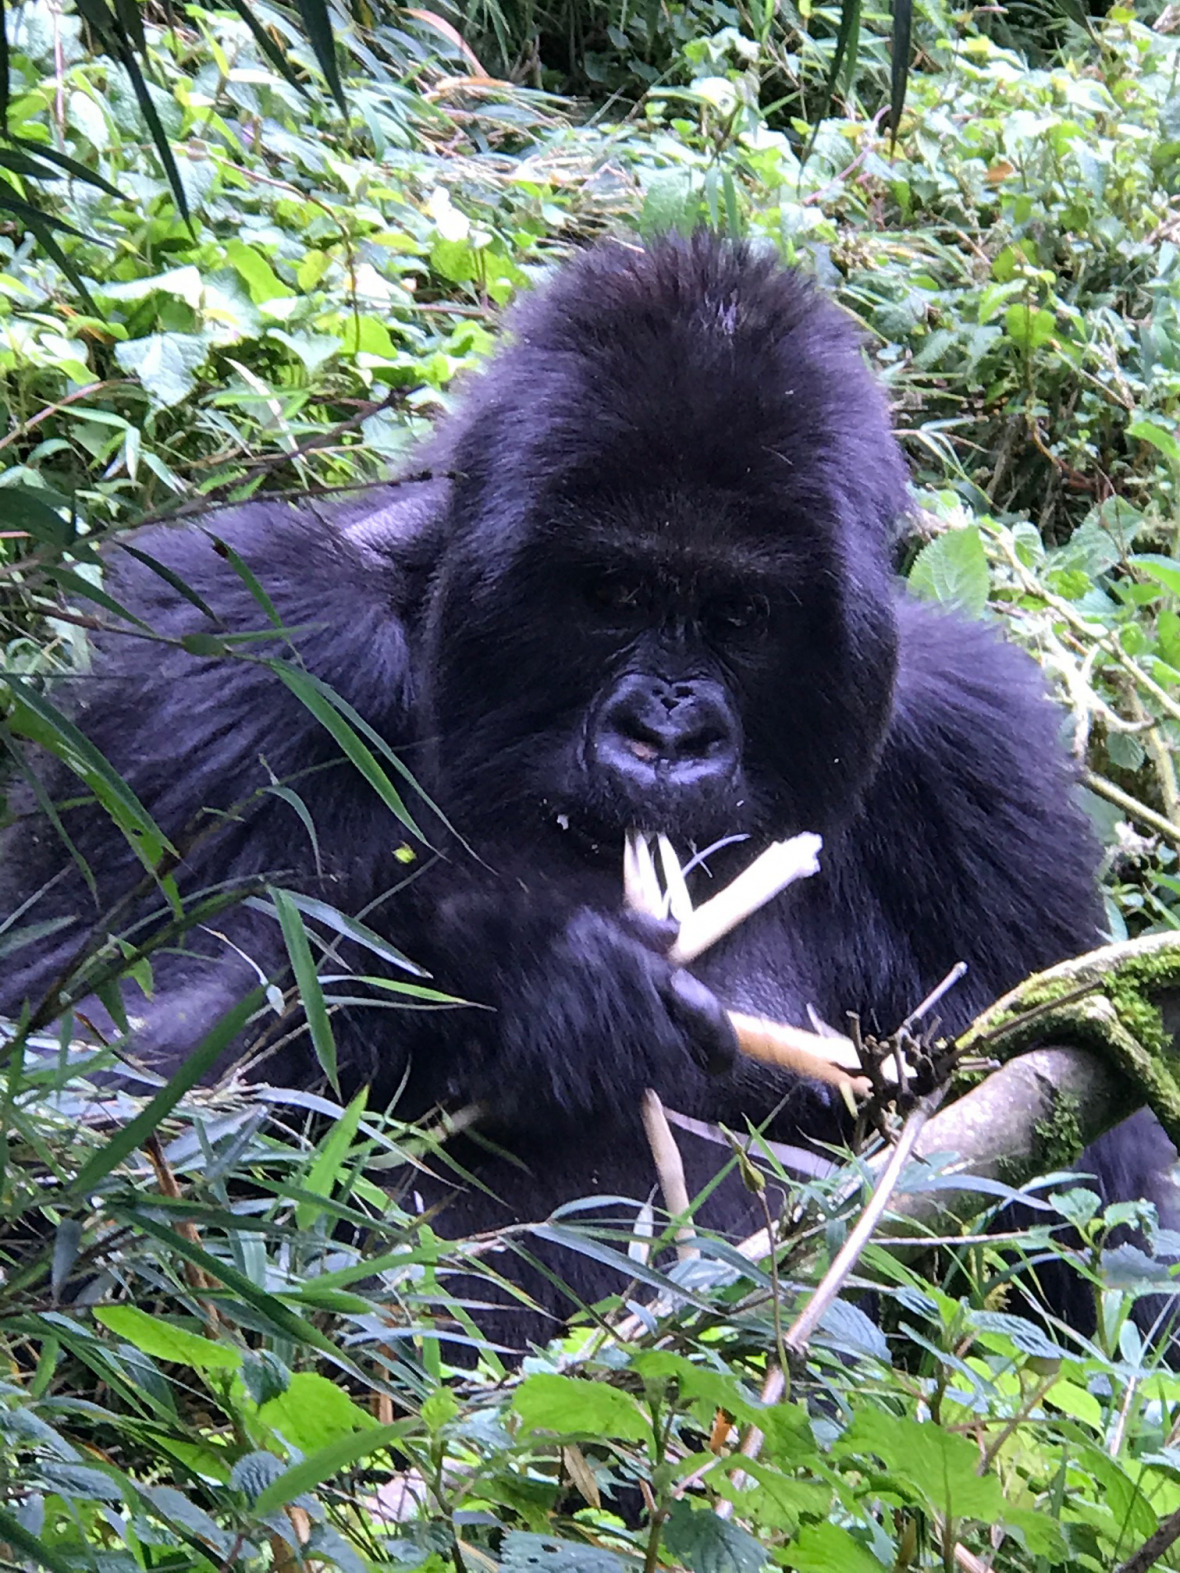 A mountain gorilla at the Volcanoes National Park.